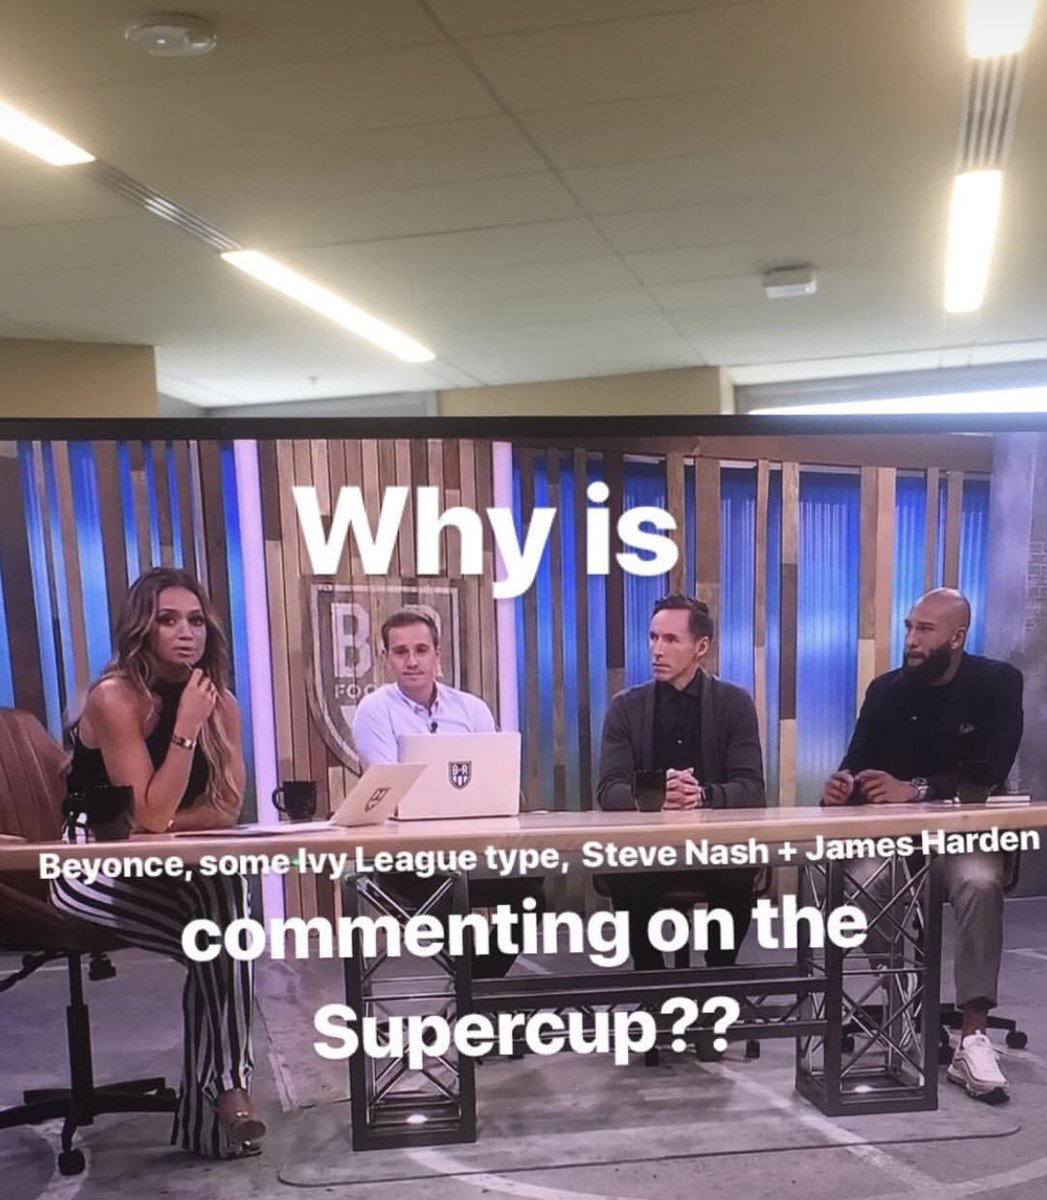 Confusion for the non-American viewers @kate_abdo @FOXSoccer #SuperCopa #RMSuperCup